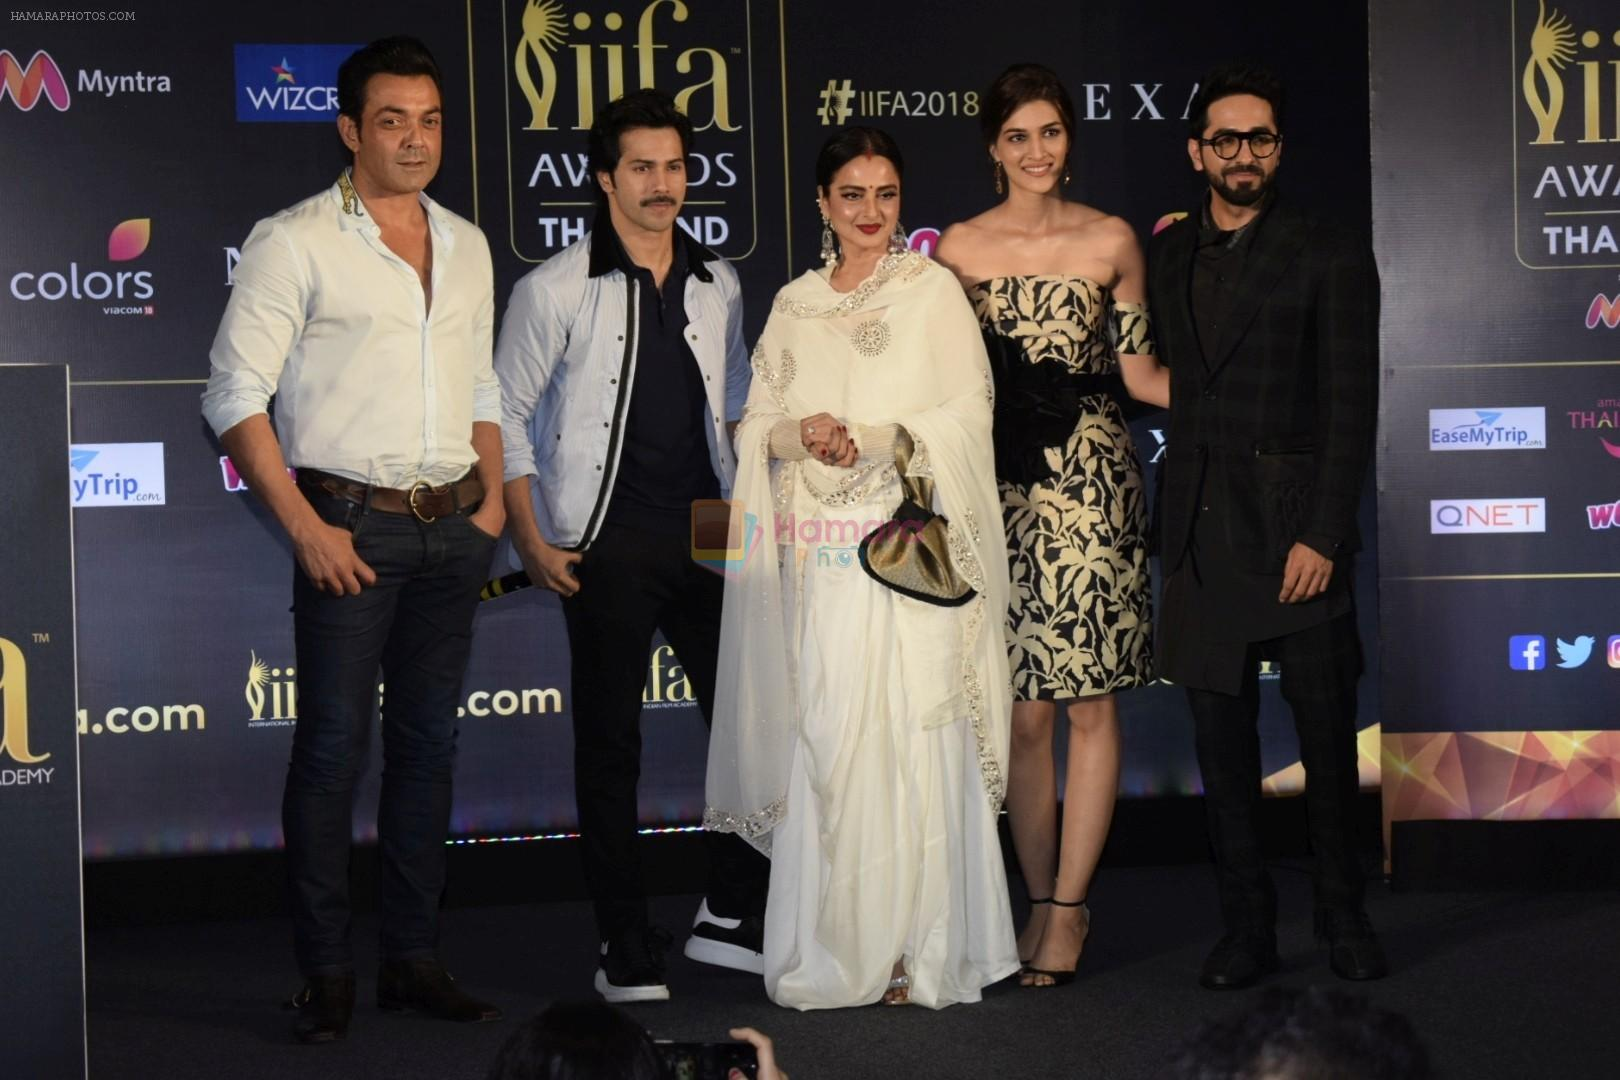 Bobby Deol, Rekha, Varun Dhawan, Ayushmann Khurrana, Kriti Sanon at IIFA press conference in jw marriott juhu on 12th June 2018